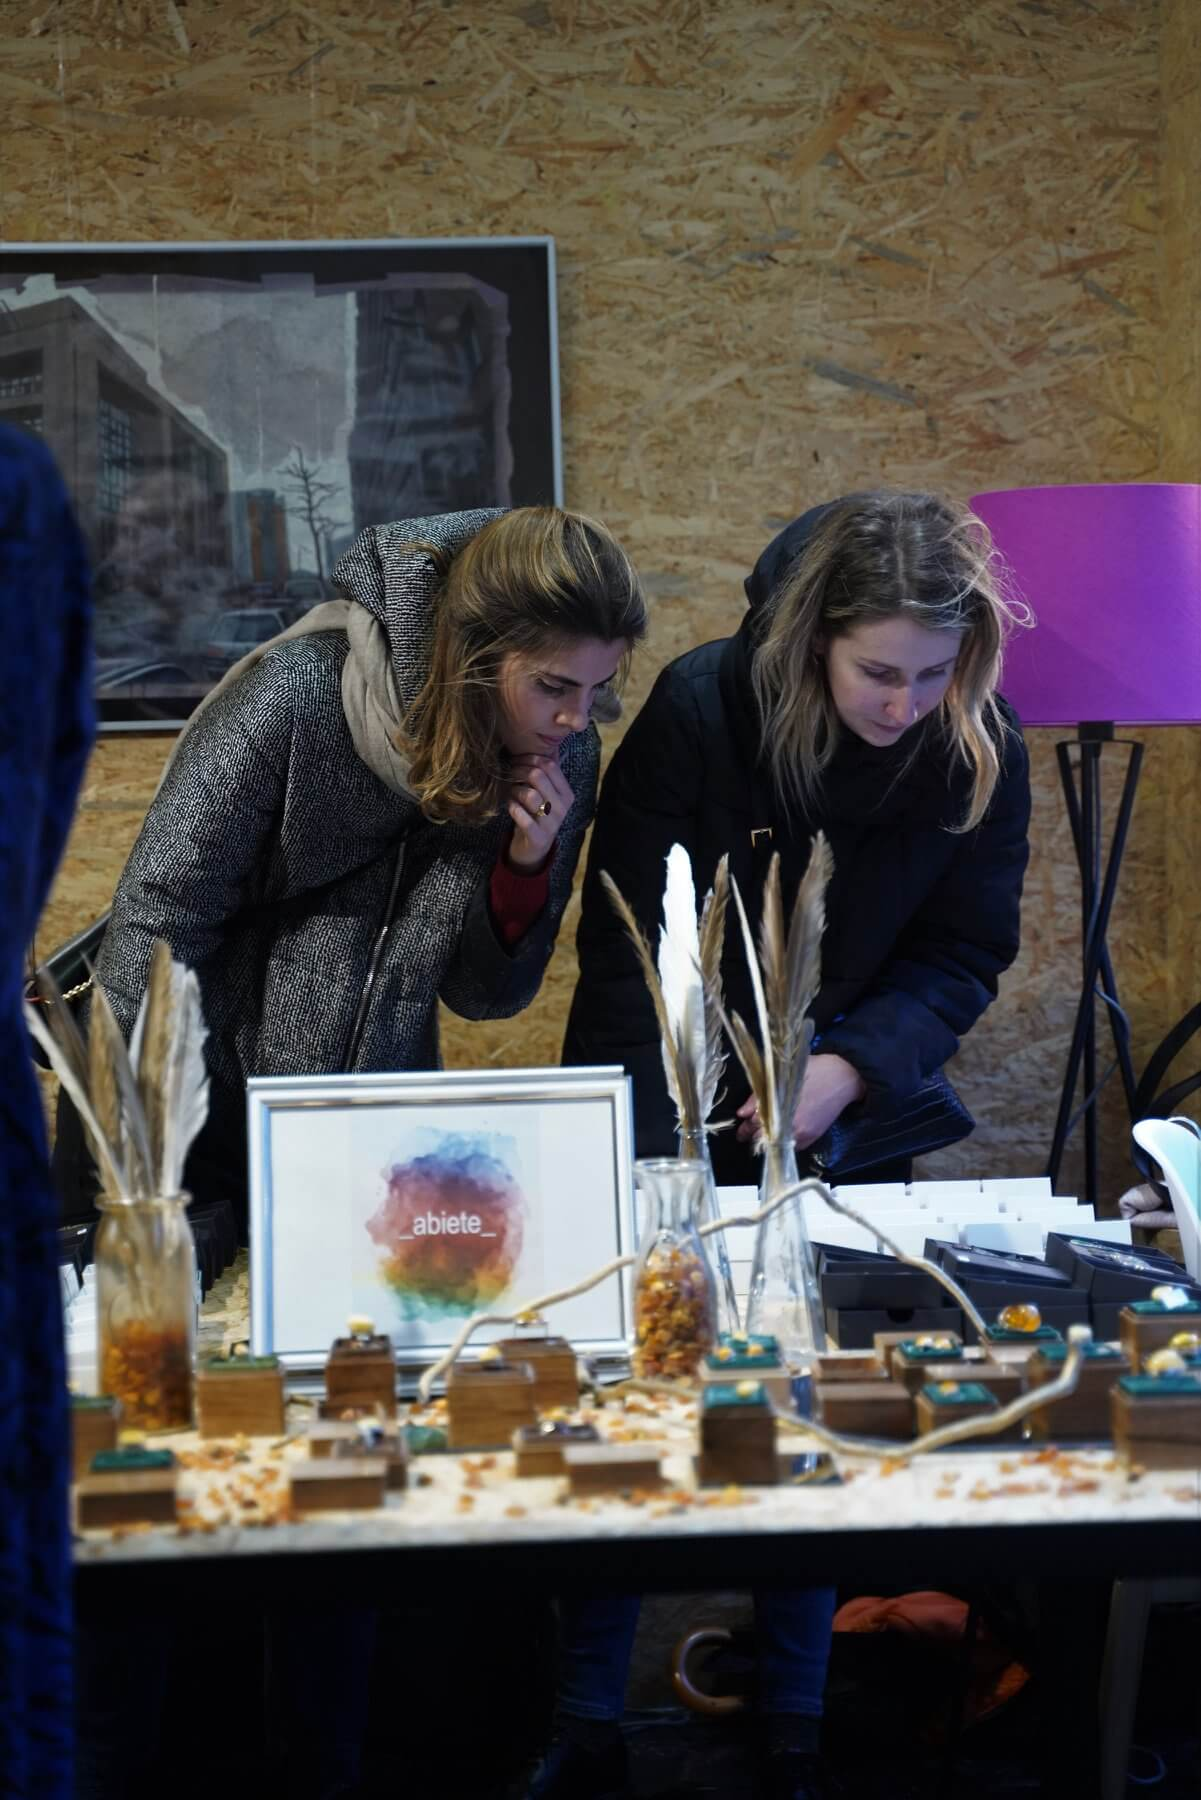 brussels baltic popup 5 pop-up store in brussels baltic design